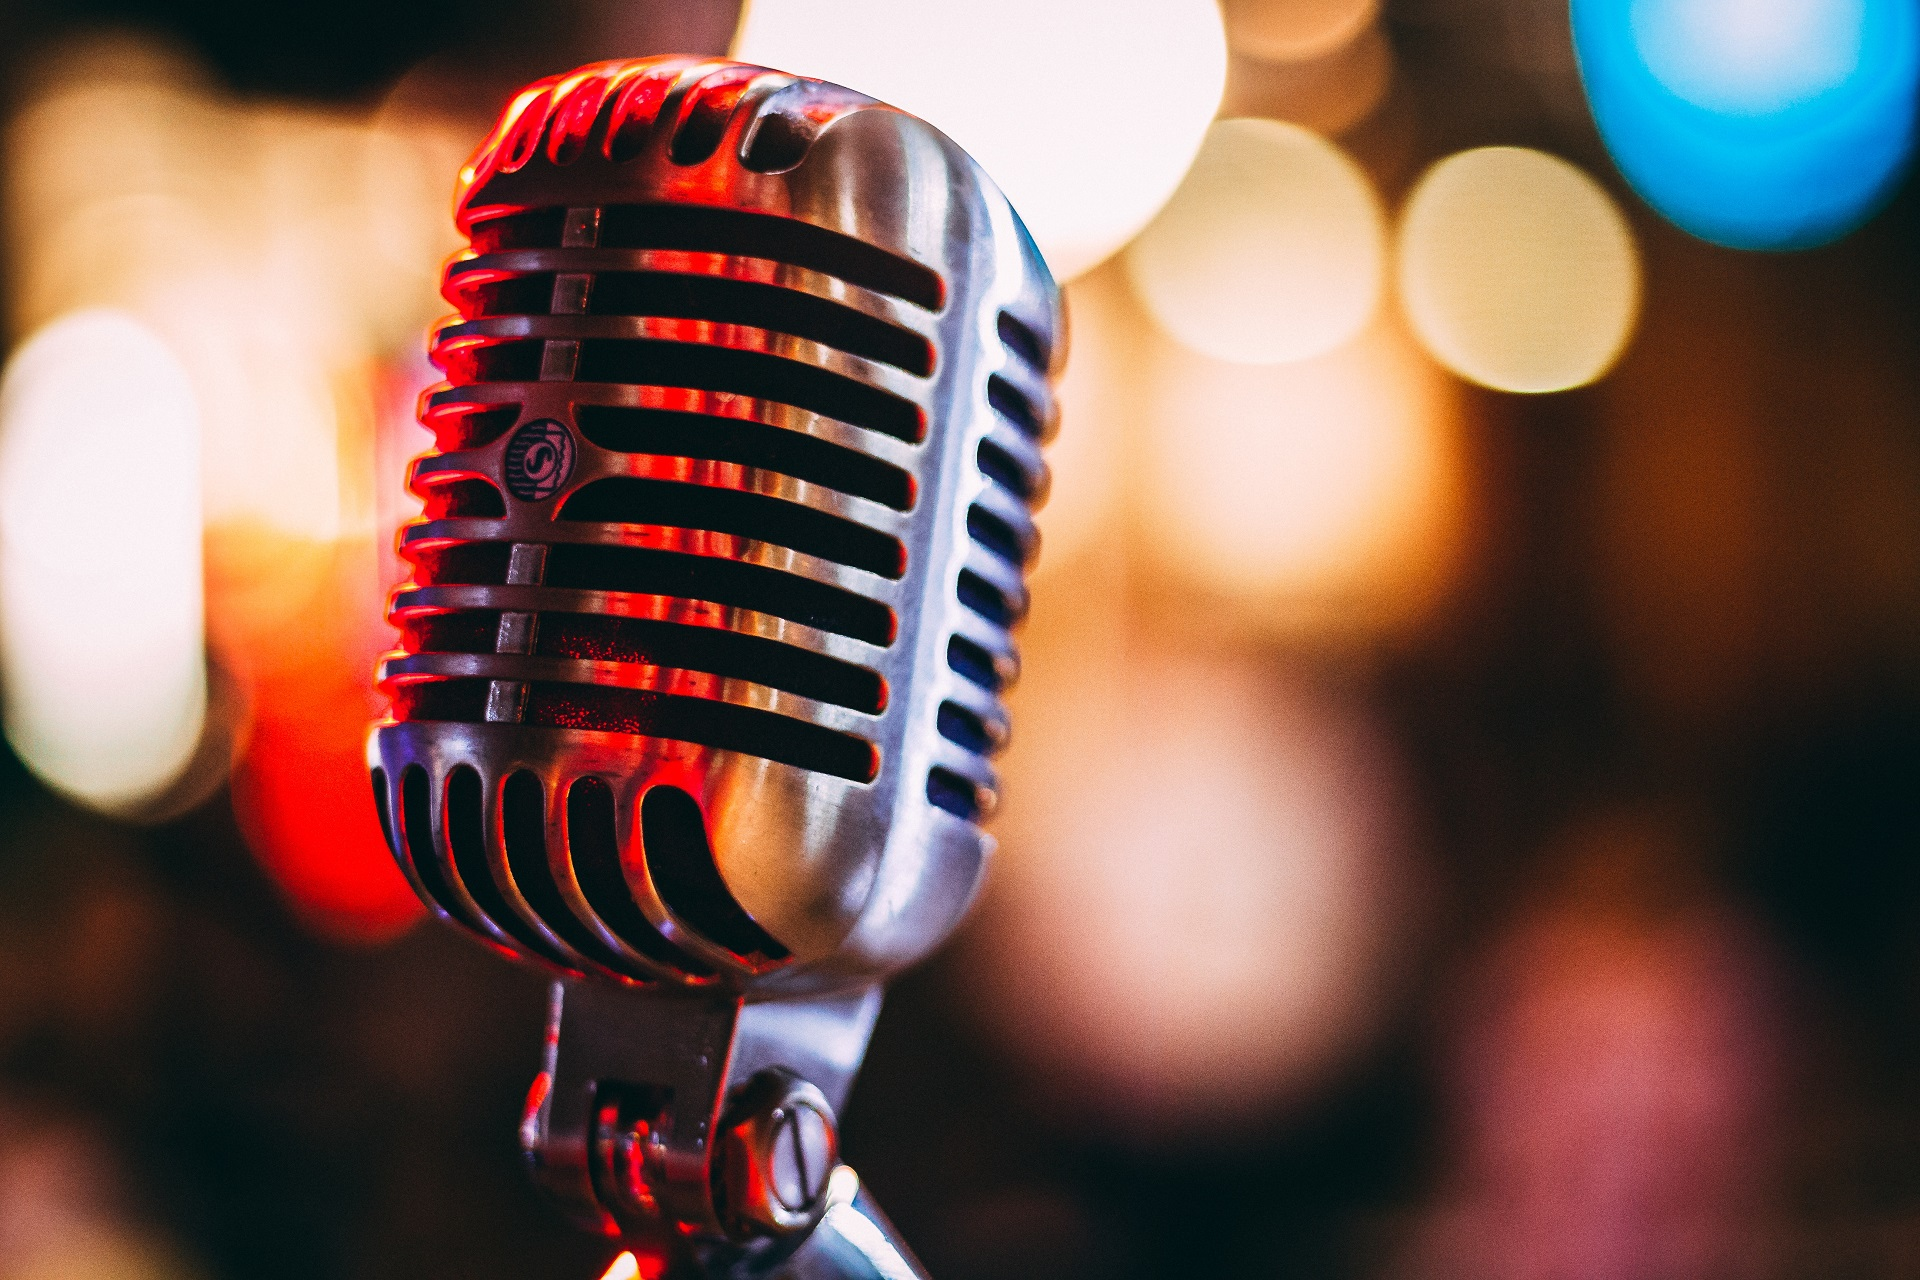 Know what type of microphone you are using.